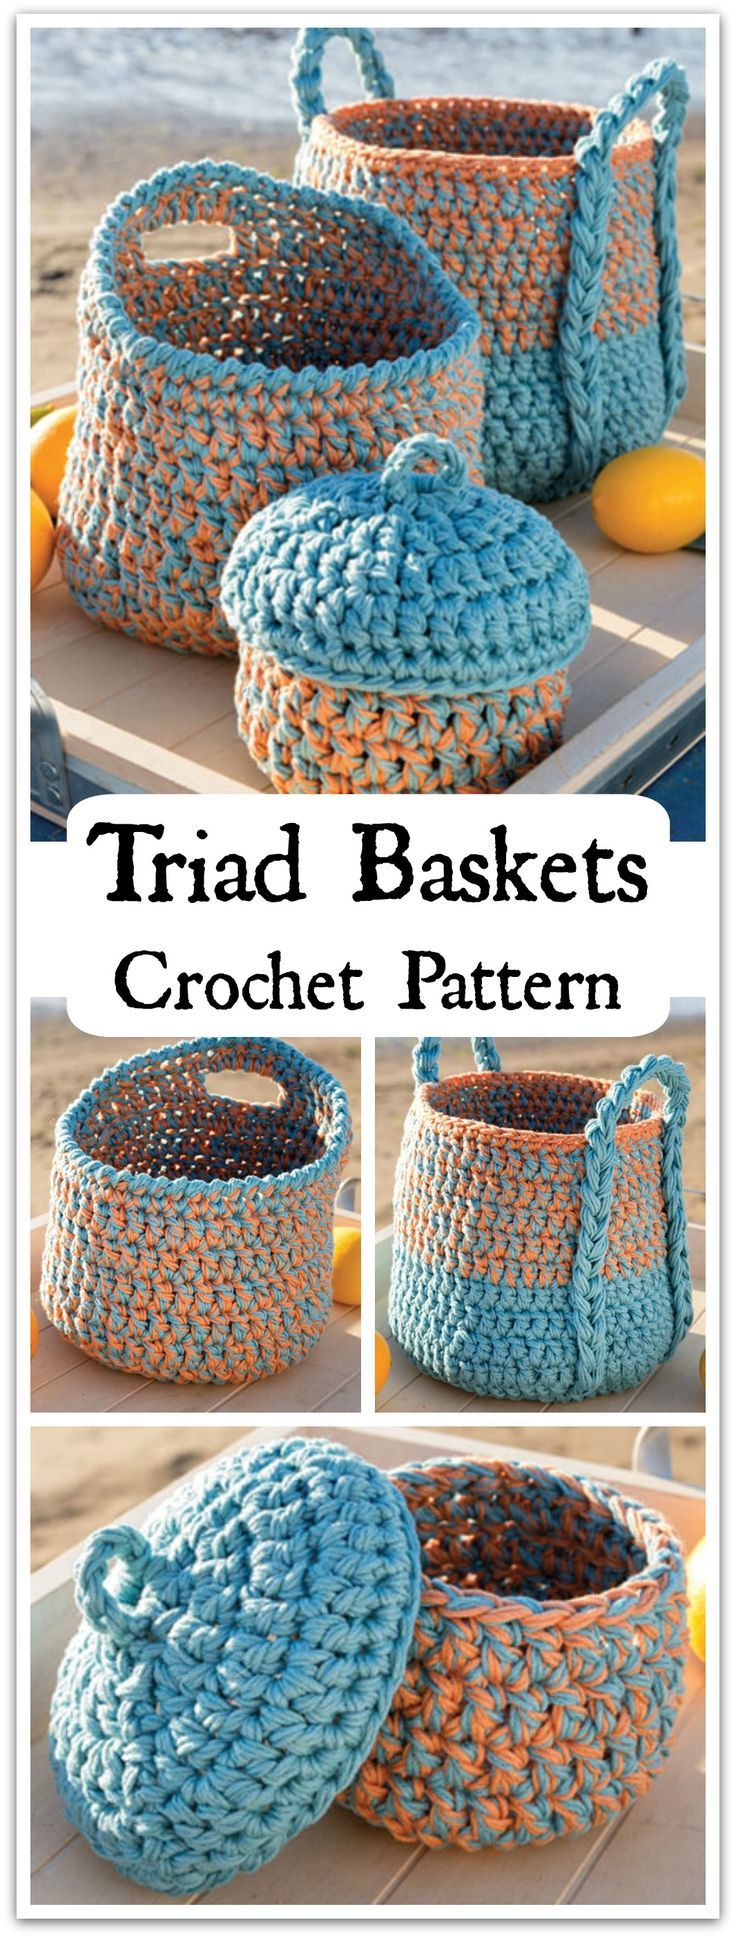 Time to get organized! Sort your yarn stash and crafts with this handy basket trio. Instant PDF download. #ad #affiliate #crochet #pattern